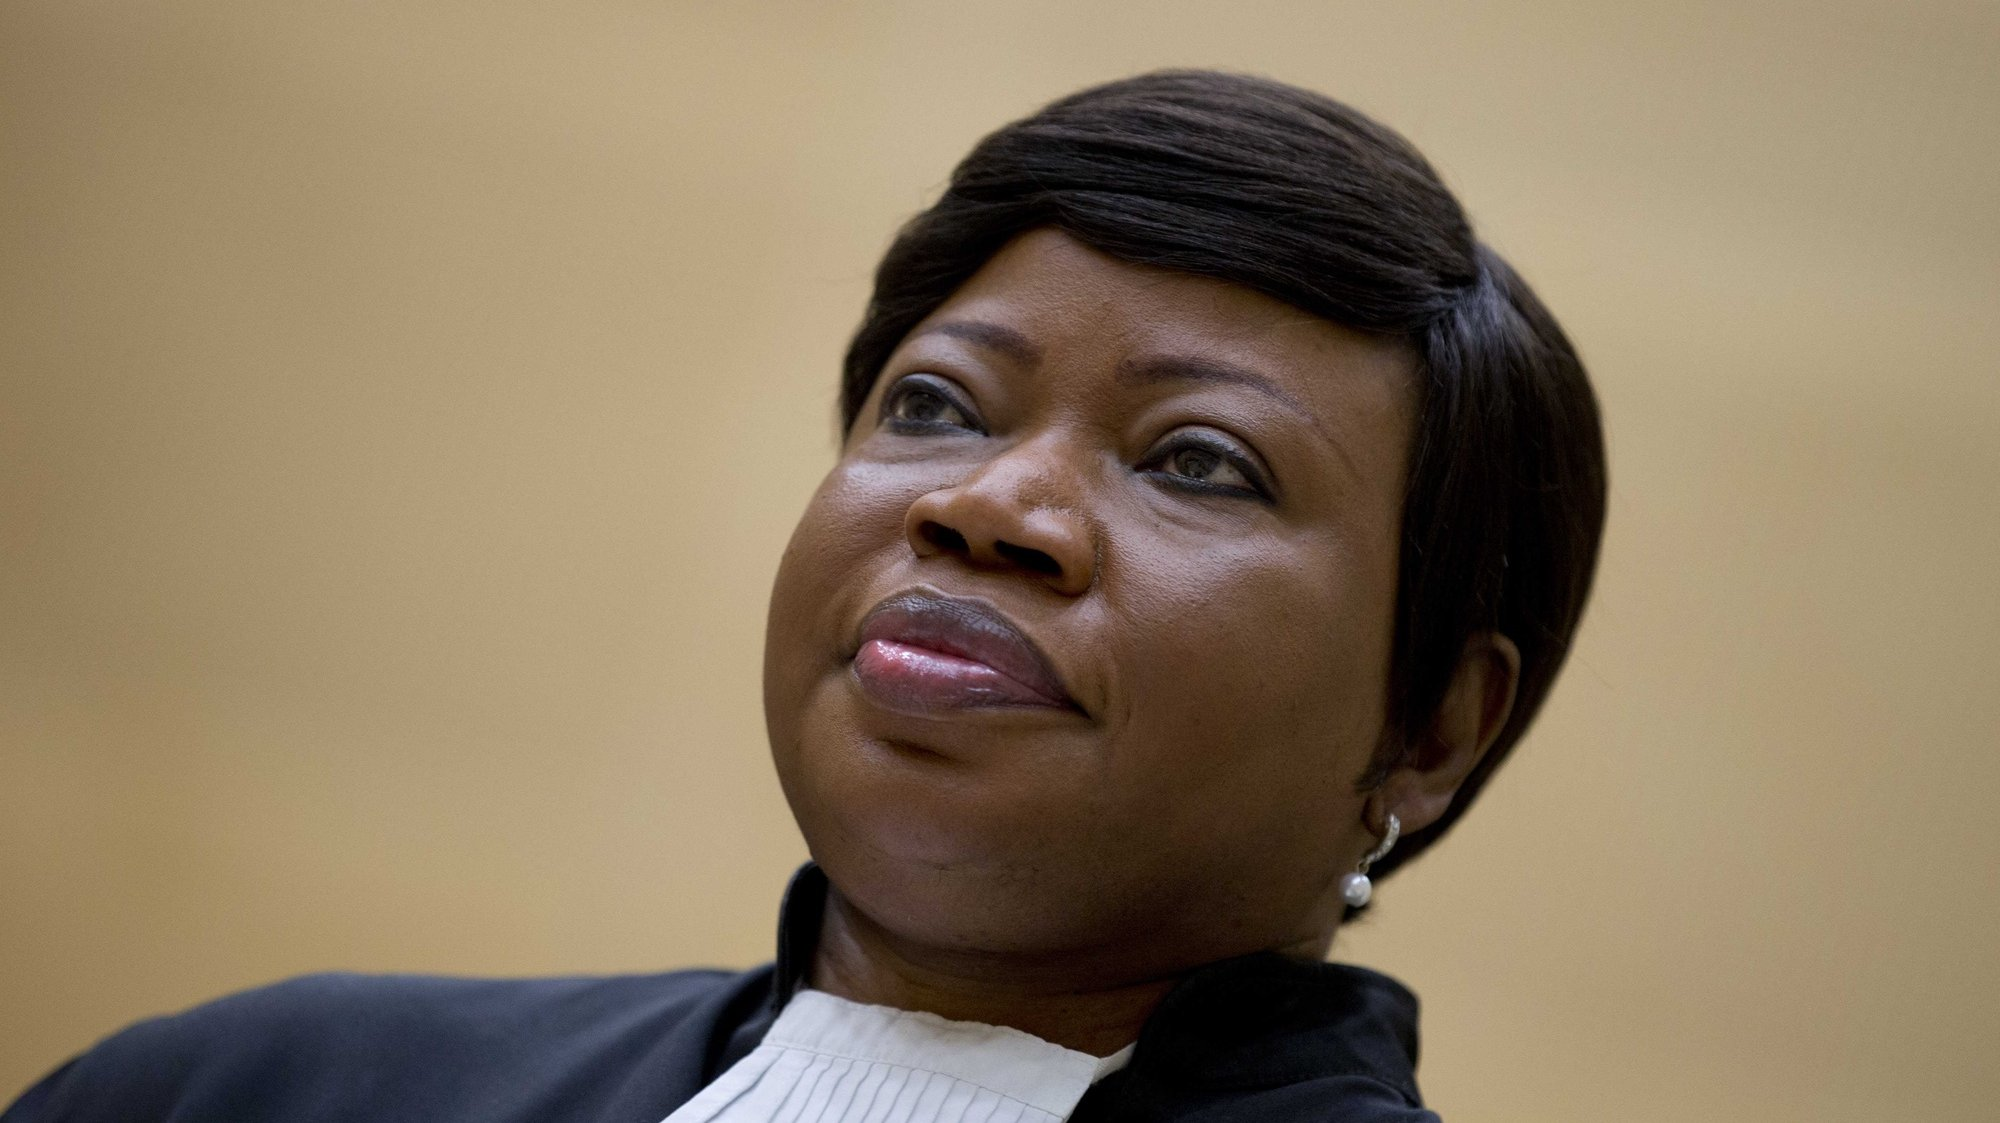 epa07486346 (FILE) -  Prosecutor Fatou Bensouda waits for former Congo Vice President Jean-Pierre Bemba to enter the court room of the International Criminal Court (ICC) to stand trial with Aime Kilolo Musamba, Jean-Jacques Mangenda Kabongo, Fidele Babala Wandu and Narcisse Arido, in The Hague, Netherlands, 29 September 2015, reissued 05 April 2019. Media reports on 05 April 2019 state that the US has revoked the visa of Fatou Bensouda, the international criminal court's chief prosecutor, her office has said, over a possible investigation into US soldiers actions in Afghanistan.  EPA/PETER DEJONG / POOL *** Local Caption *** 52273662